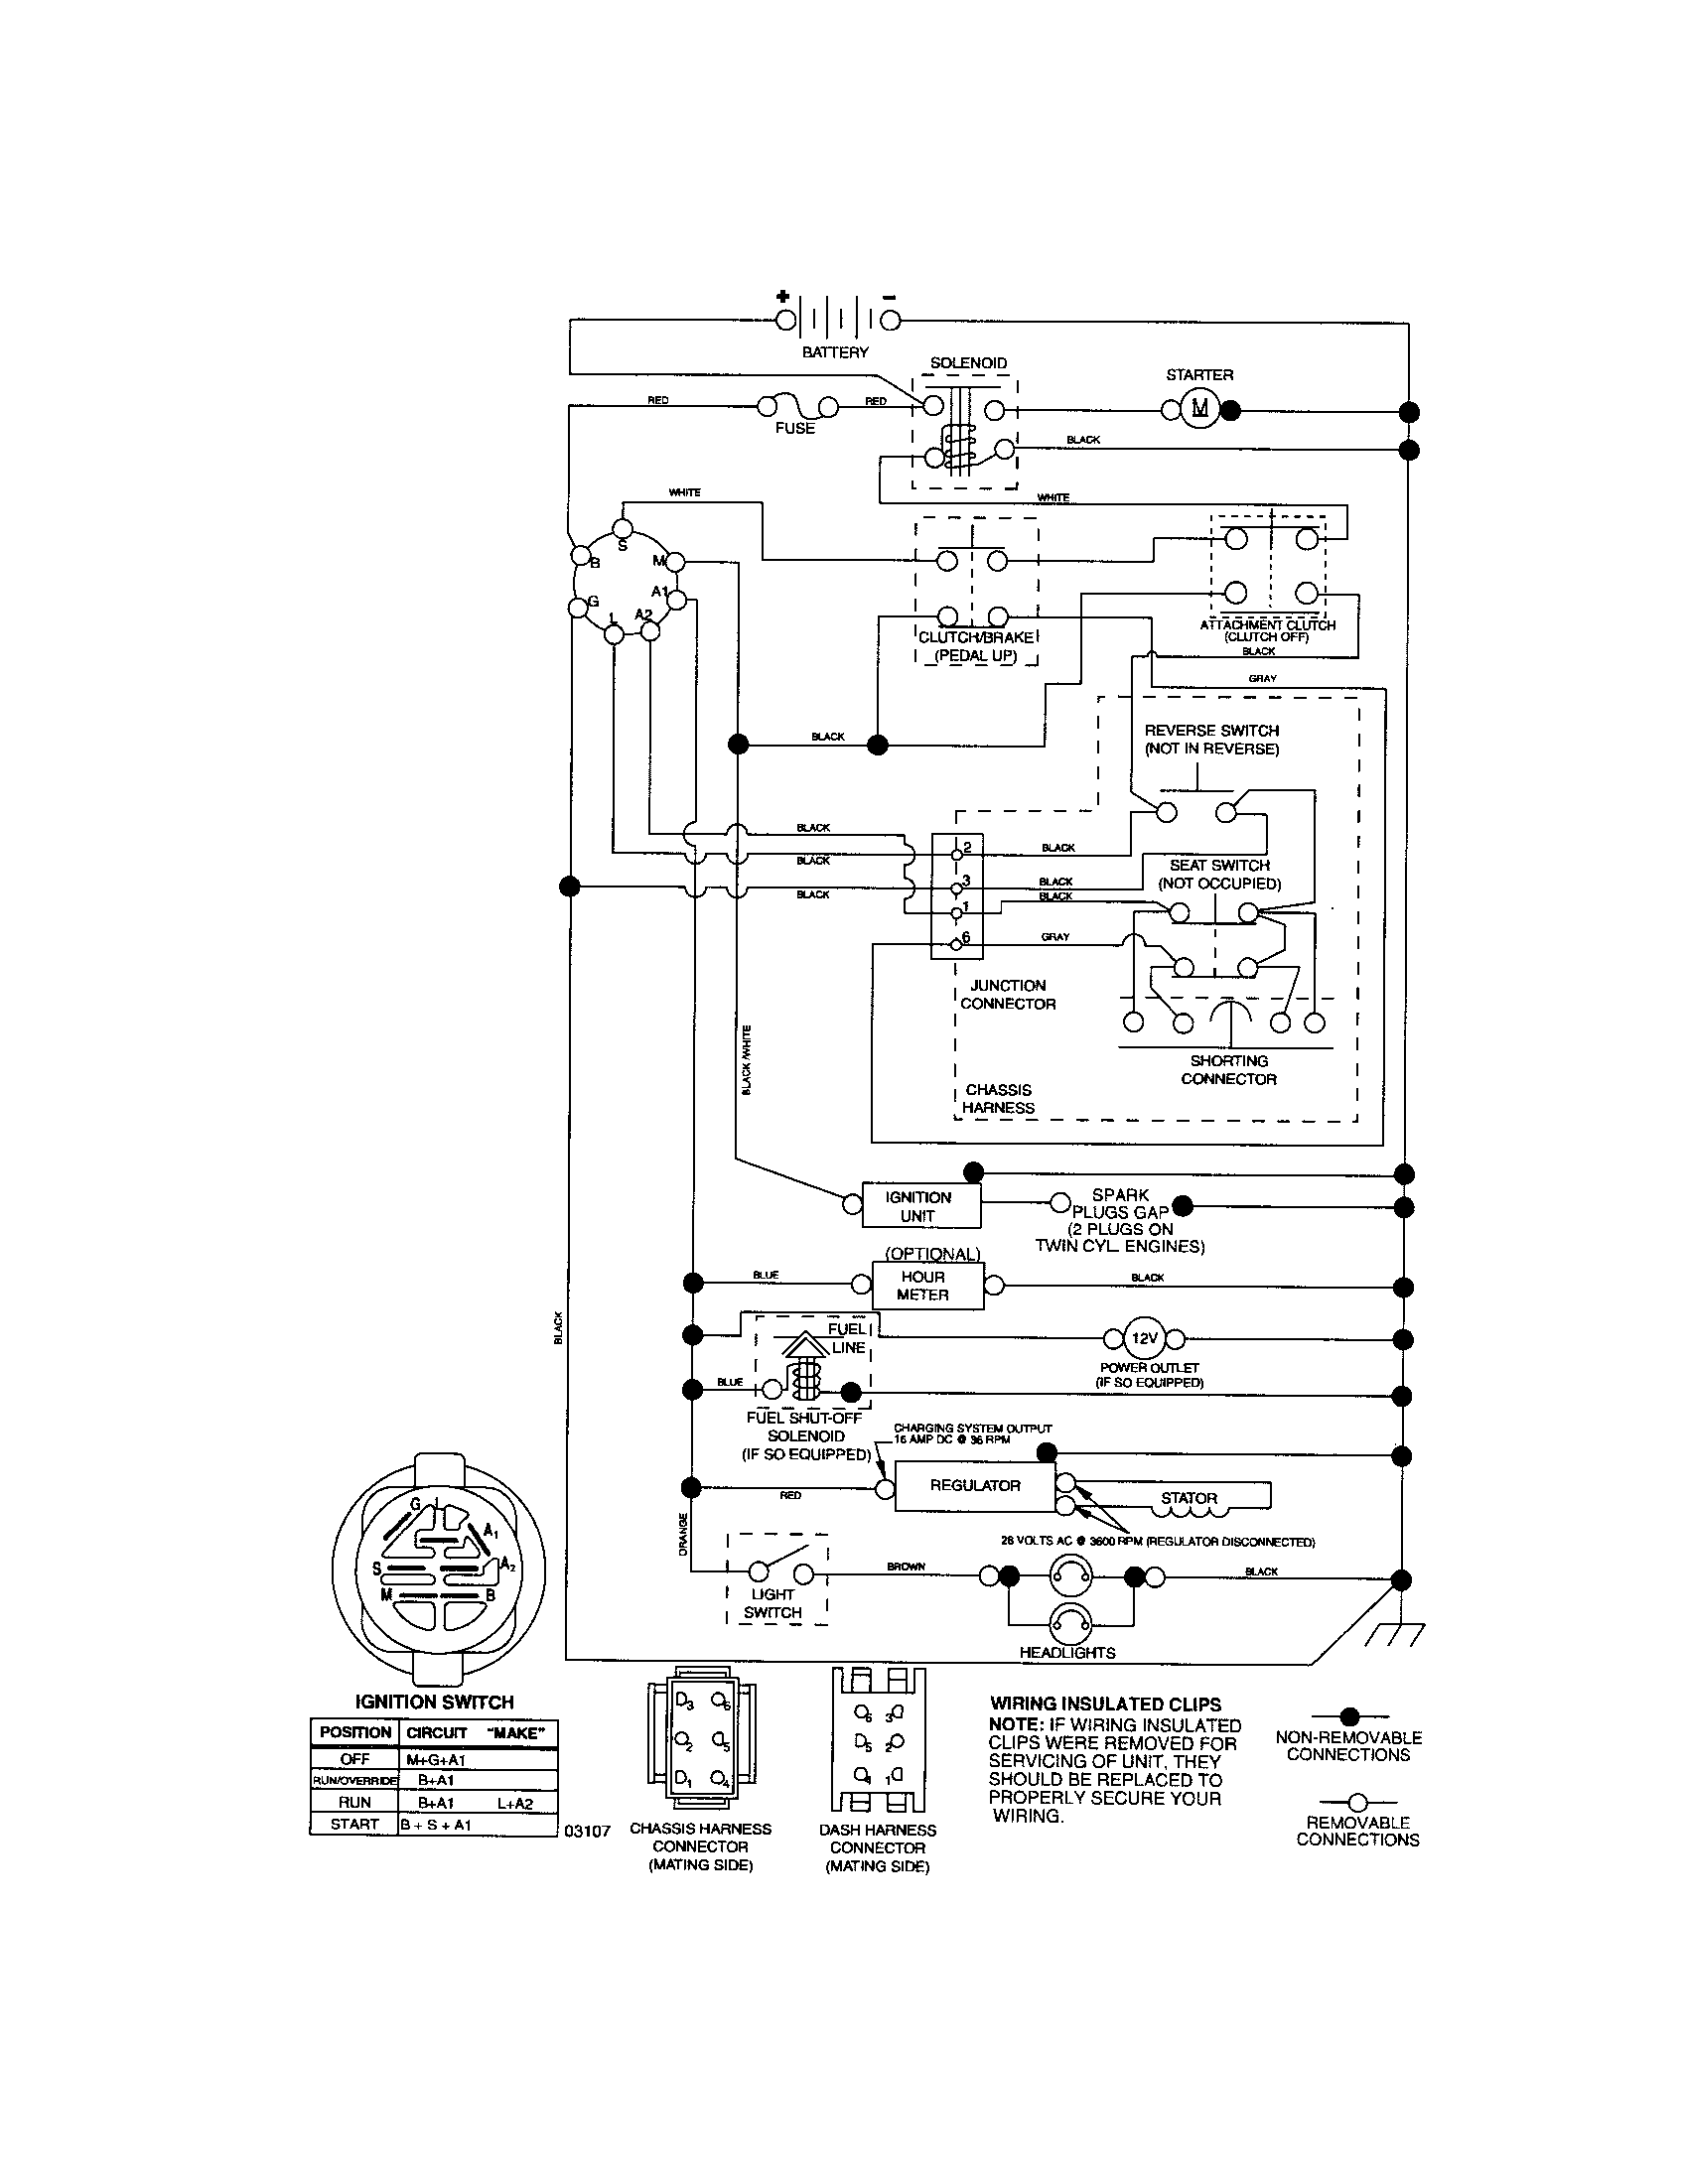 mtd wiring diagram manual trusted wiring diagram rh 3 16 5 gartenmoebel rupp de mtd riding mower wiring diagram schematic mtd riding lawn mower wiring  [ 1696 x 2200 Pixel ]